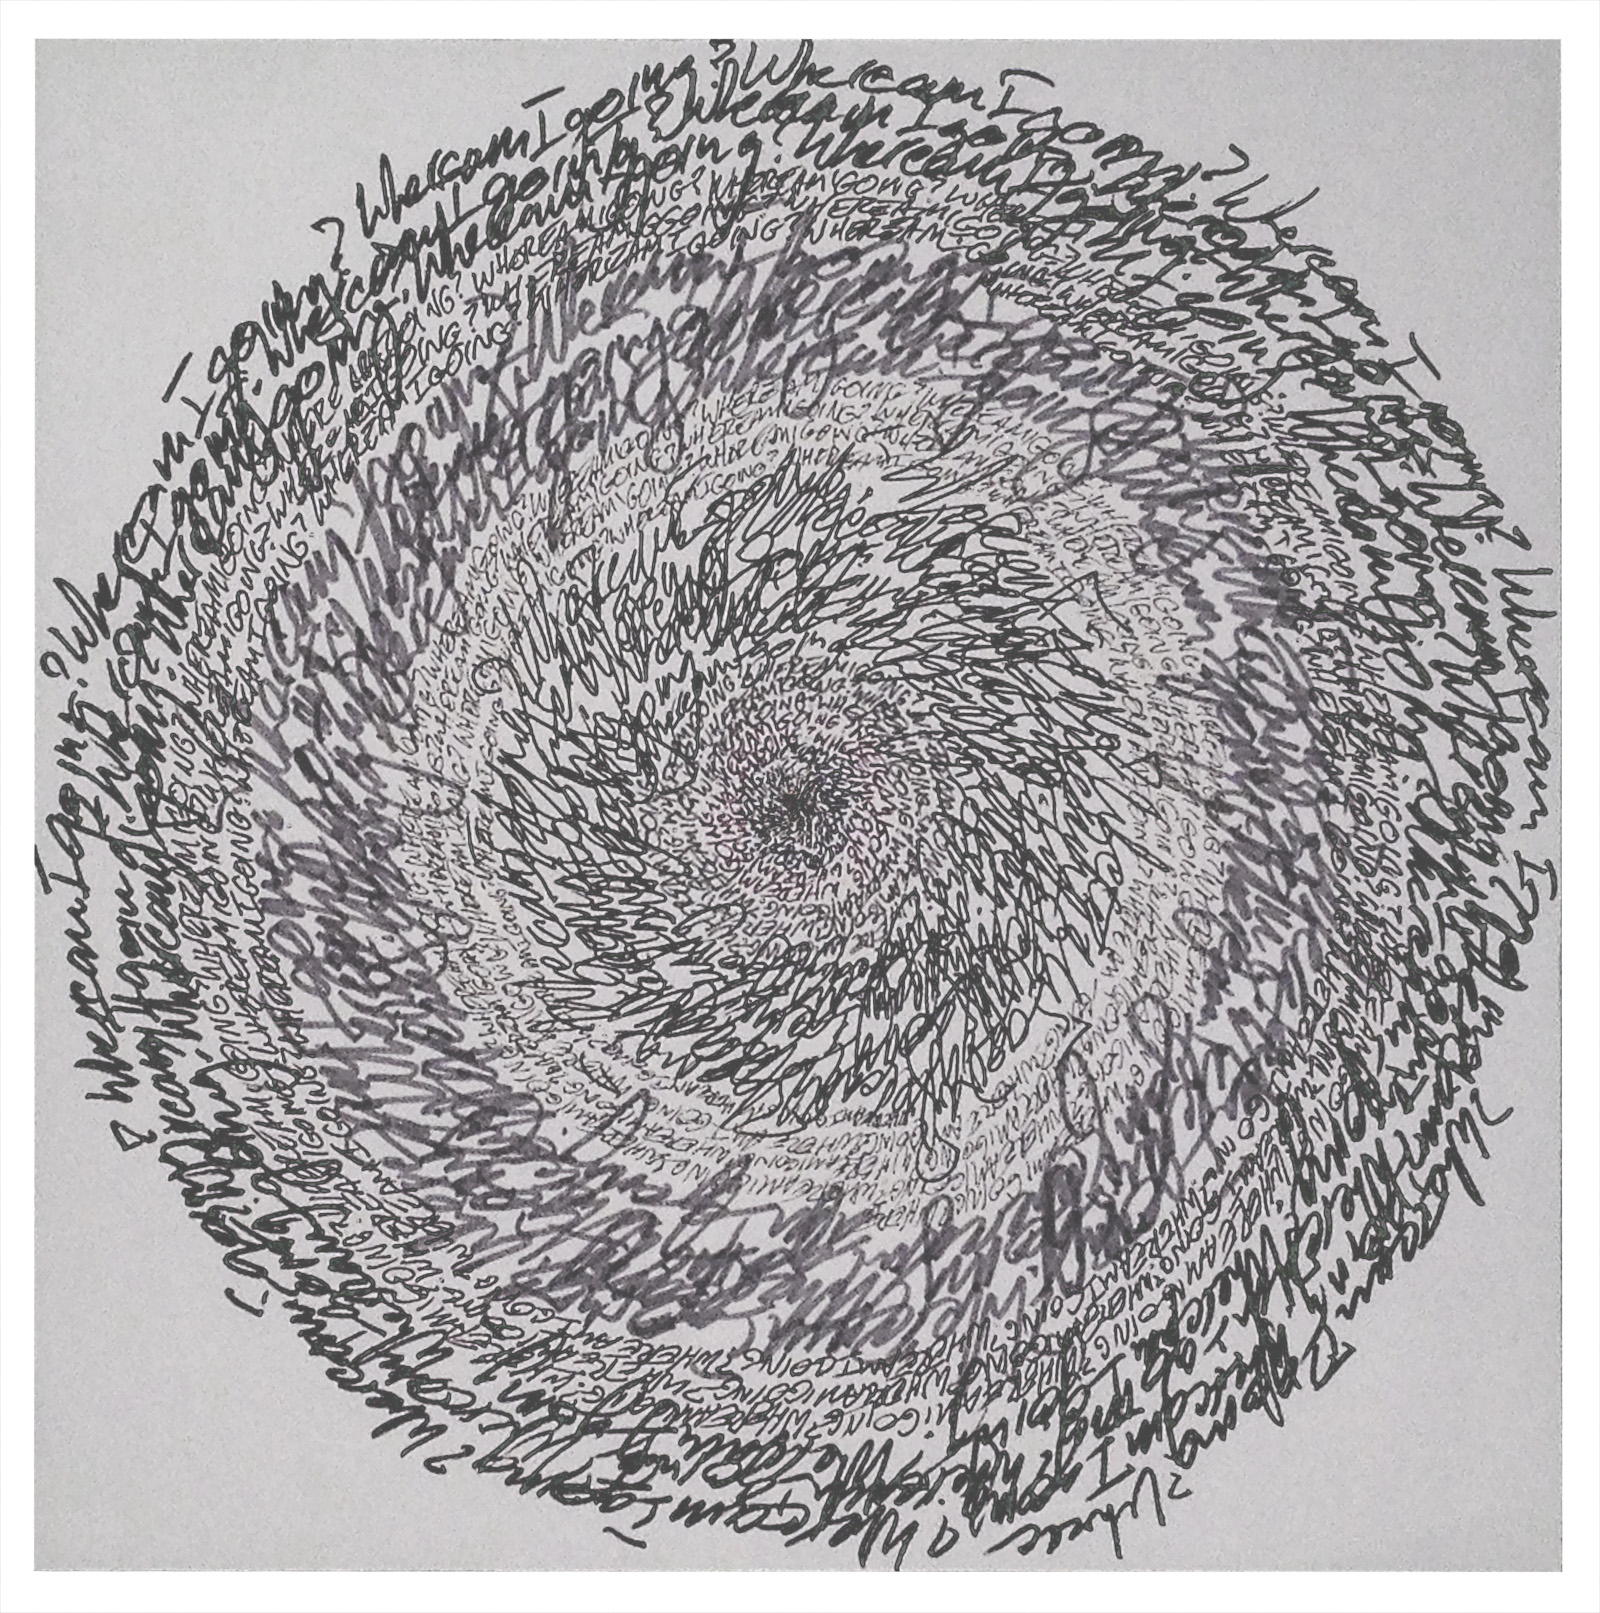 """Energy Spiral—Where Am I Going?"", 2014, pen & marker on paper, 10 in. x 10 in."